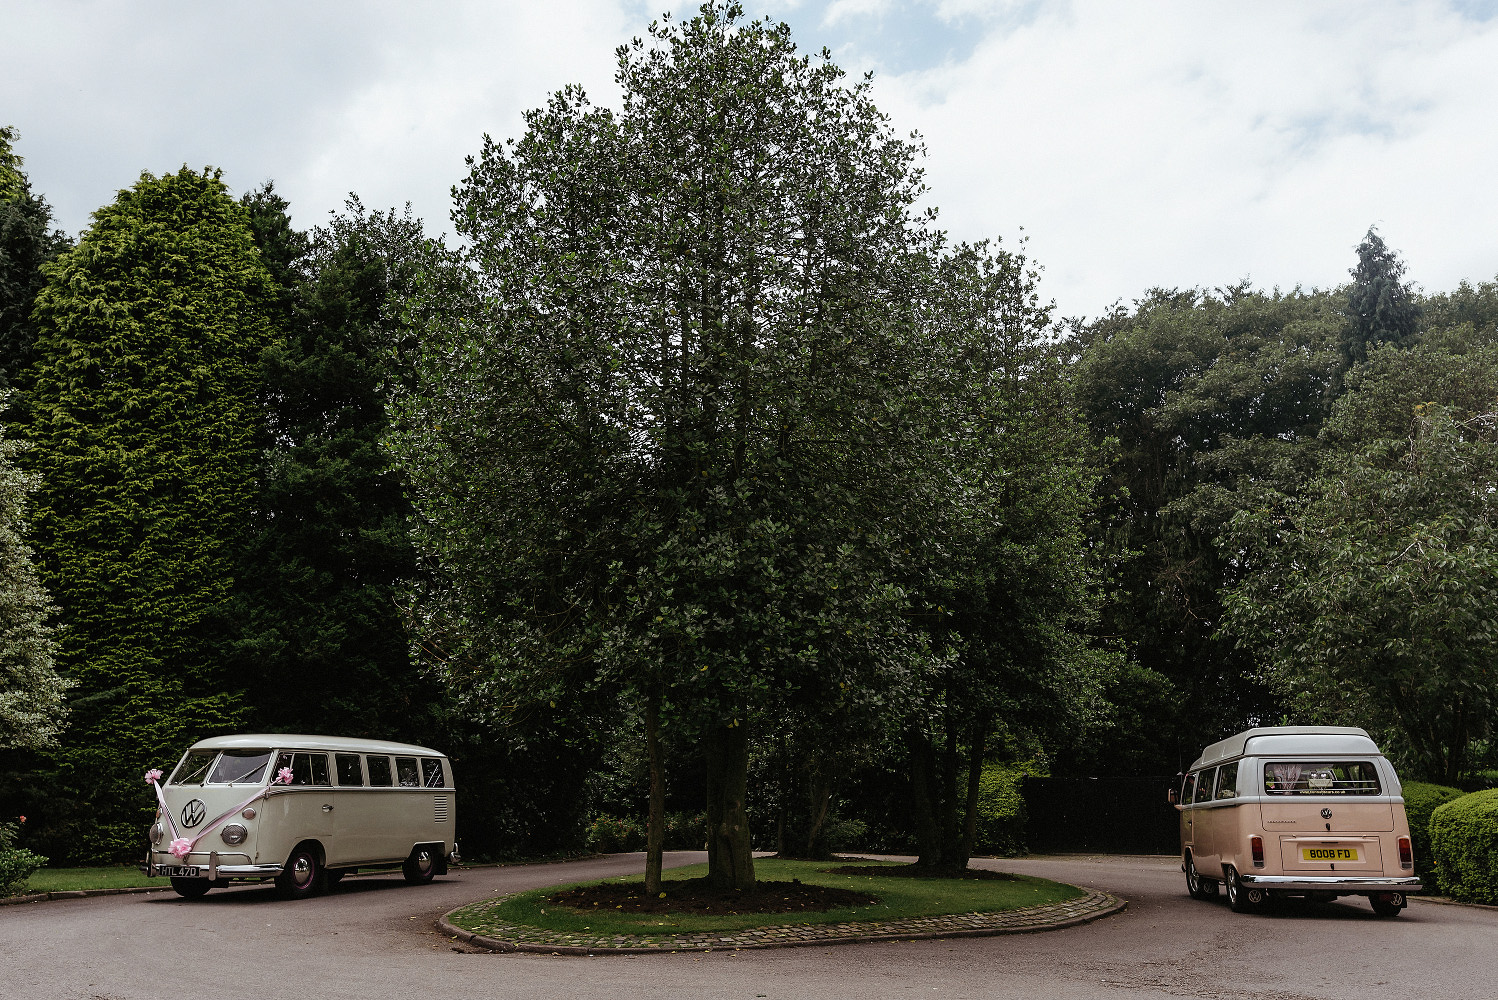 vintage camper vans arrive at wedding venue